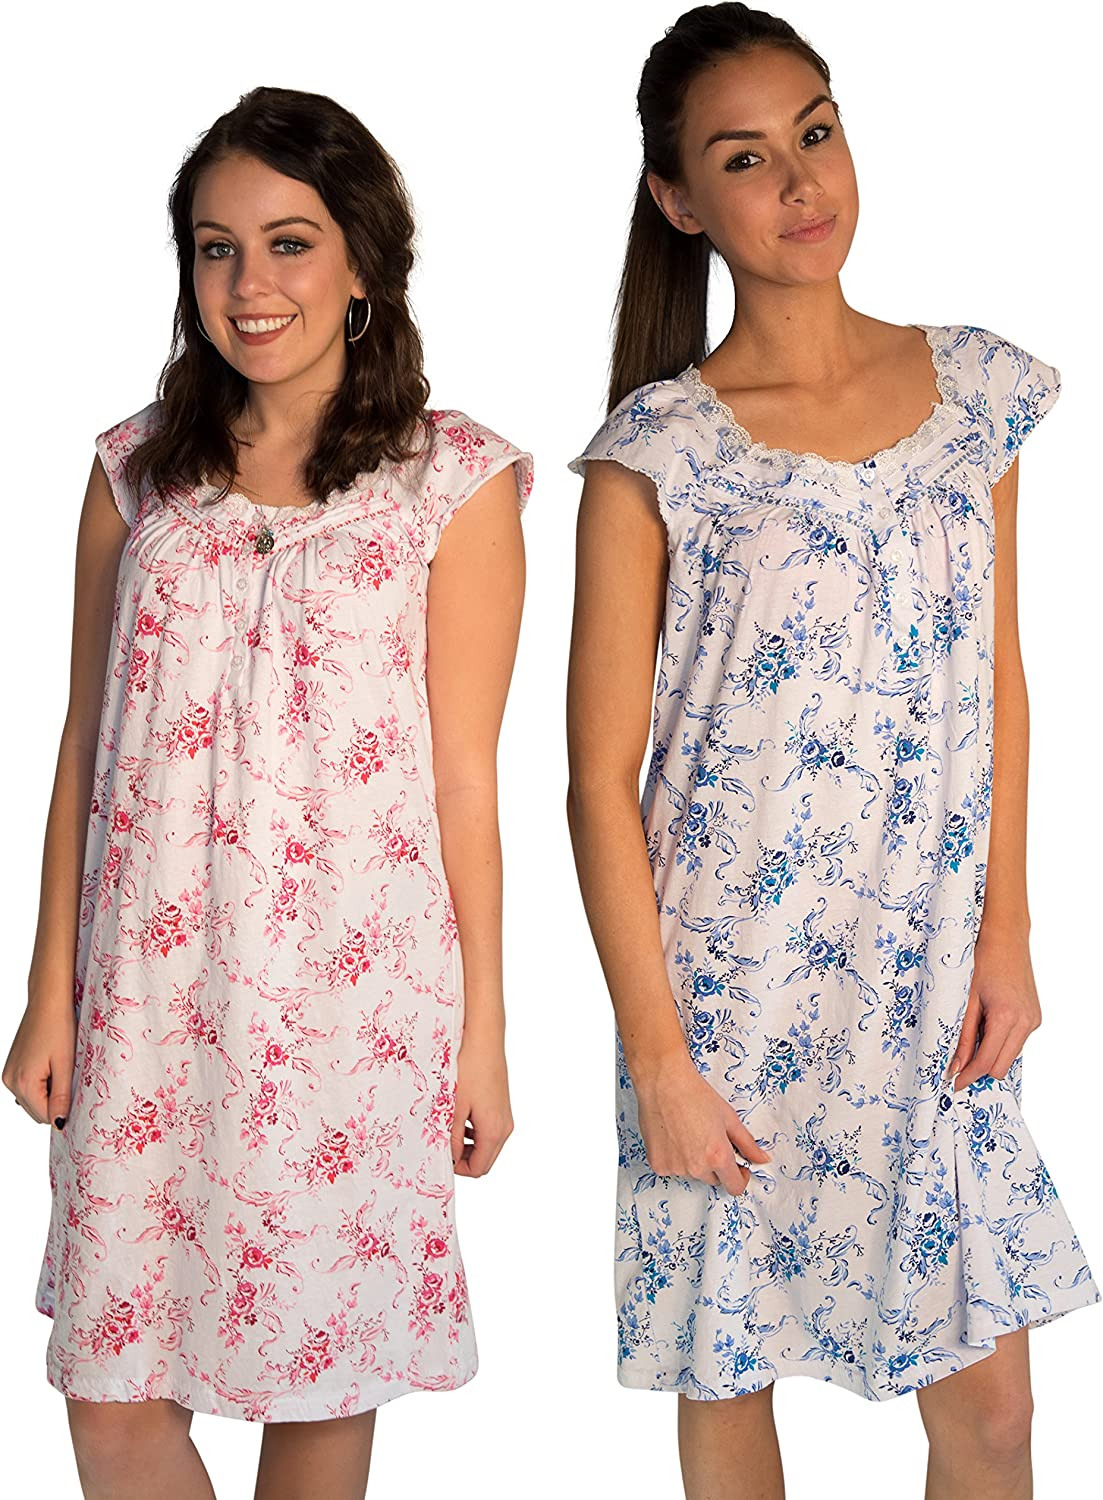 JOTW 2 Pack of Nightgown Sleepwear Dress with pinkPrint  Medium to 2XL Available (0077)